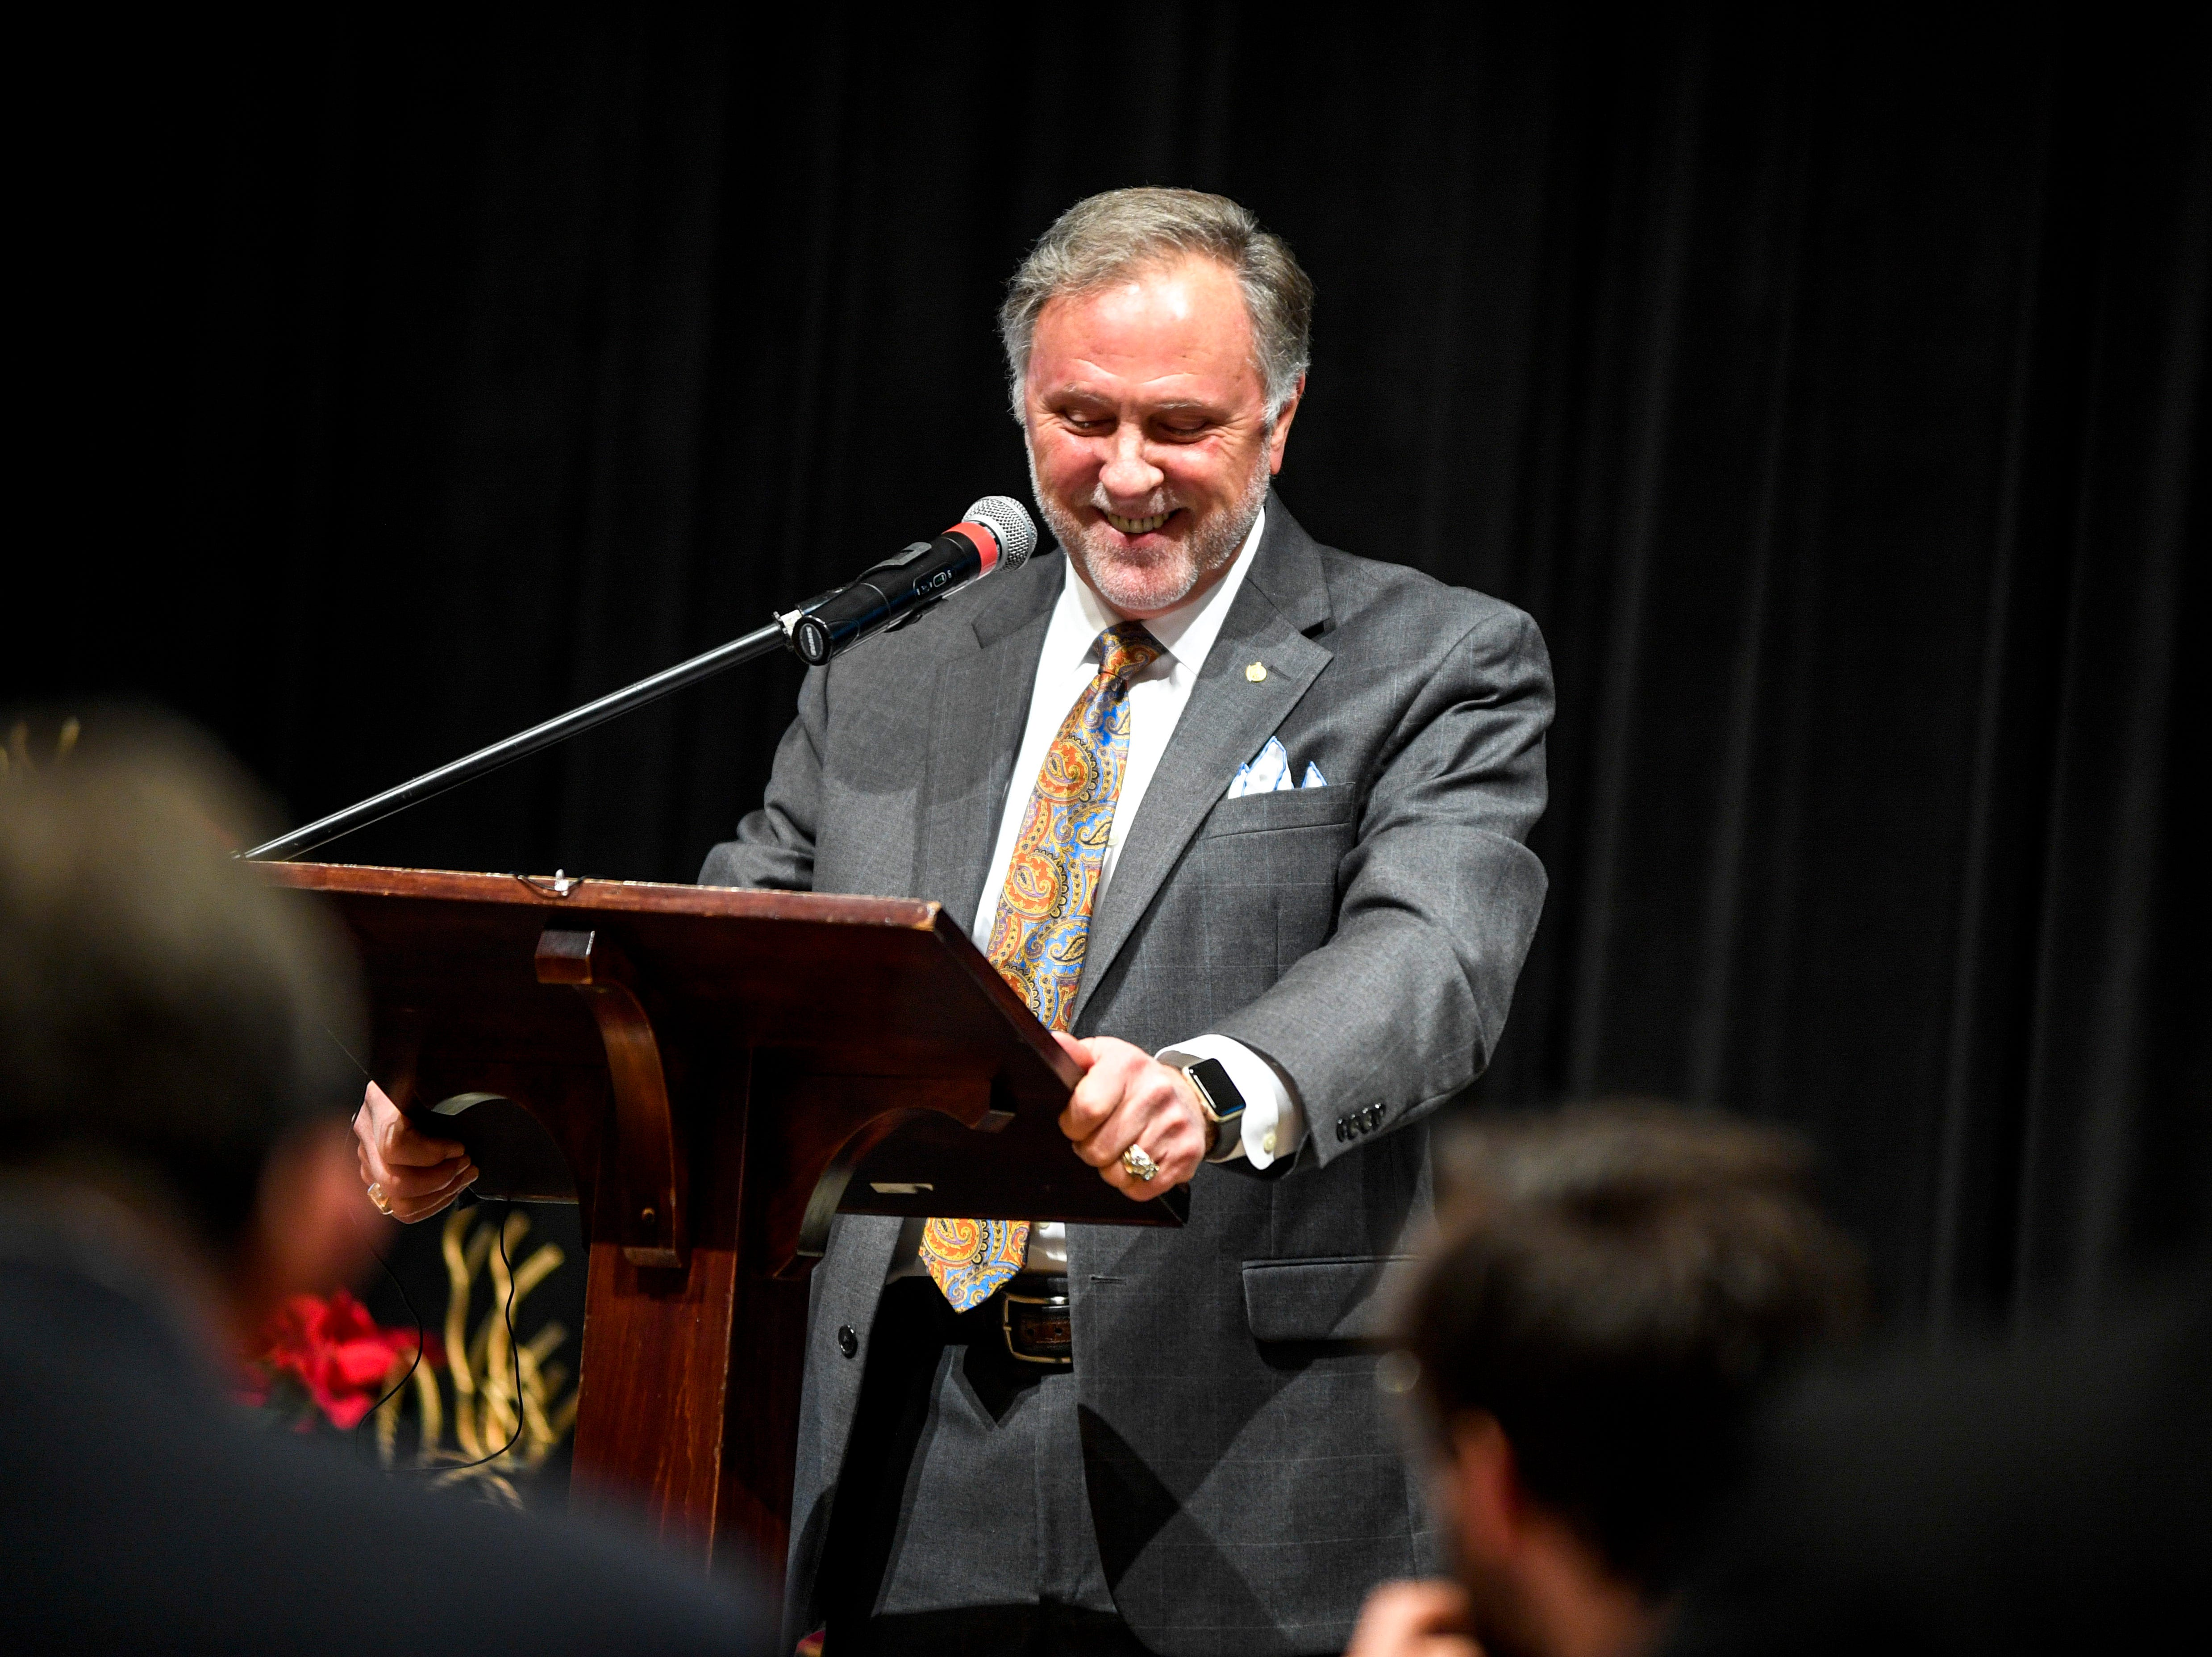 Madison County Mayor Jimmy Harris smiles while introducing himself at the podium during the monthly First Friday Forum at First United Methodist Church in Jackson, Tenn., on Friday, Jan. 4, 2019.